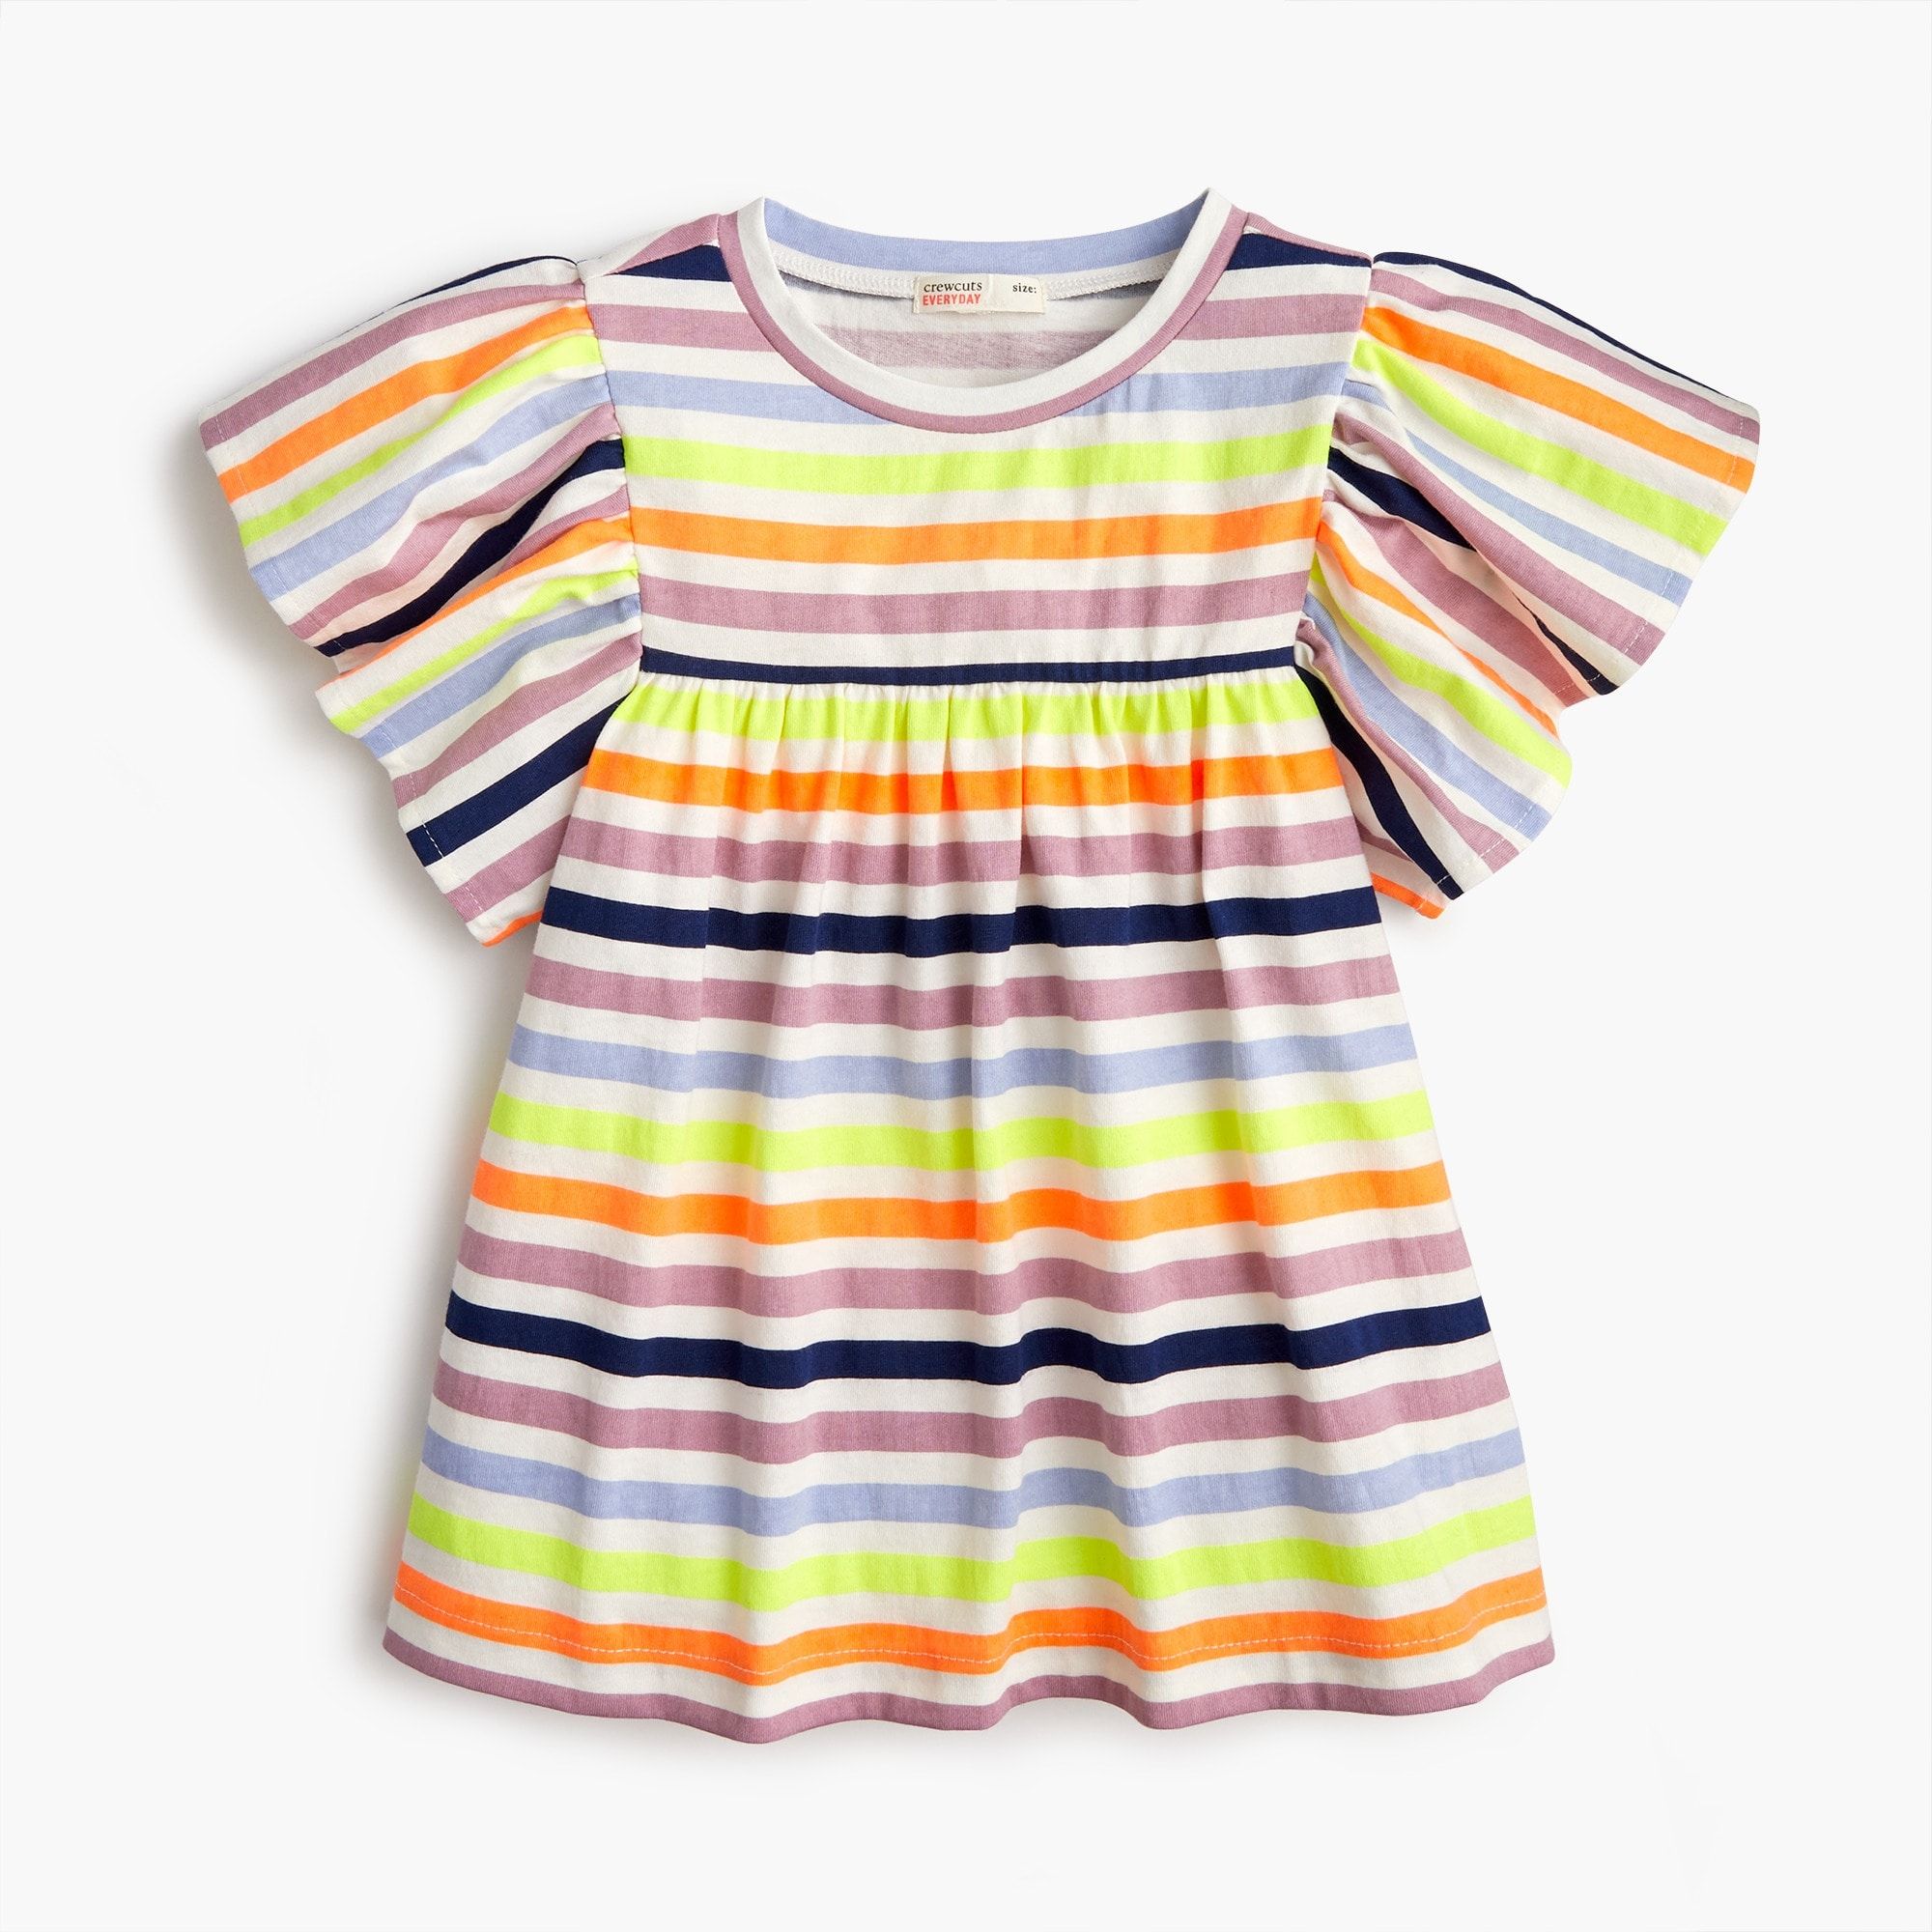 girls Girls' bell-sleeved T-shirt in stripes